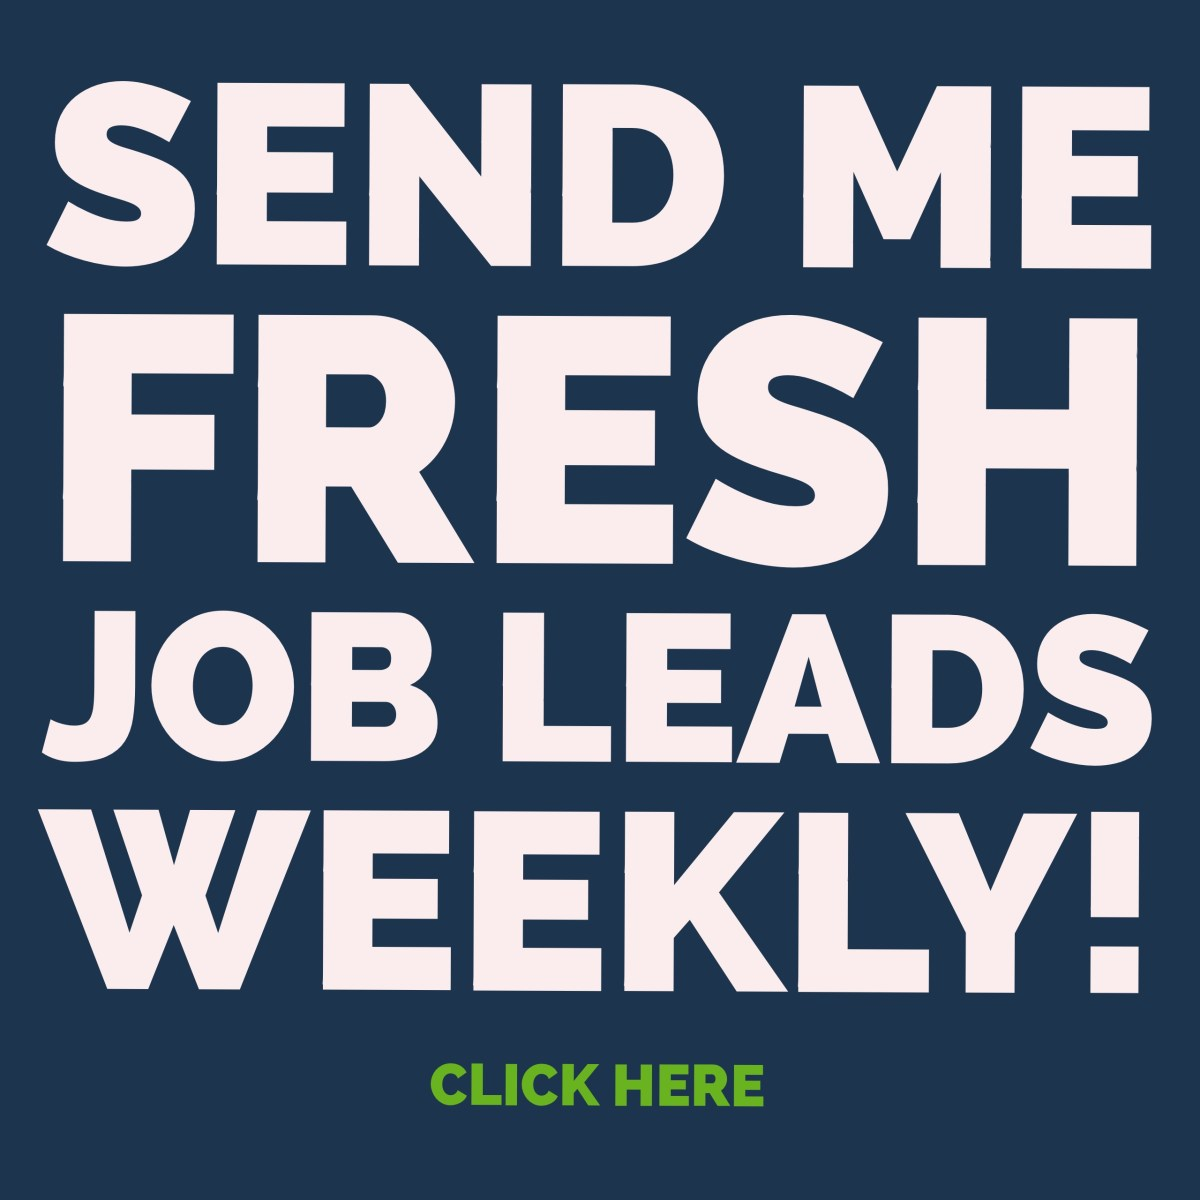 Send Me Fresh Job Leads Weekly! Link.